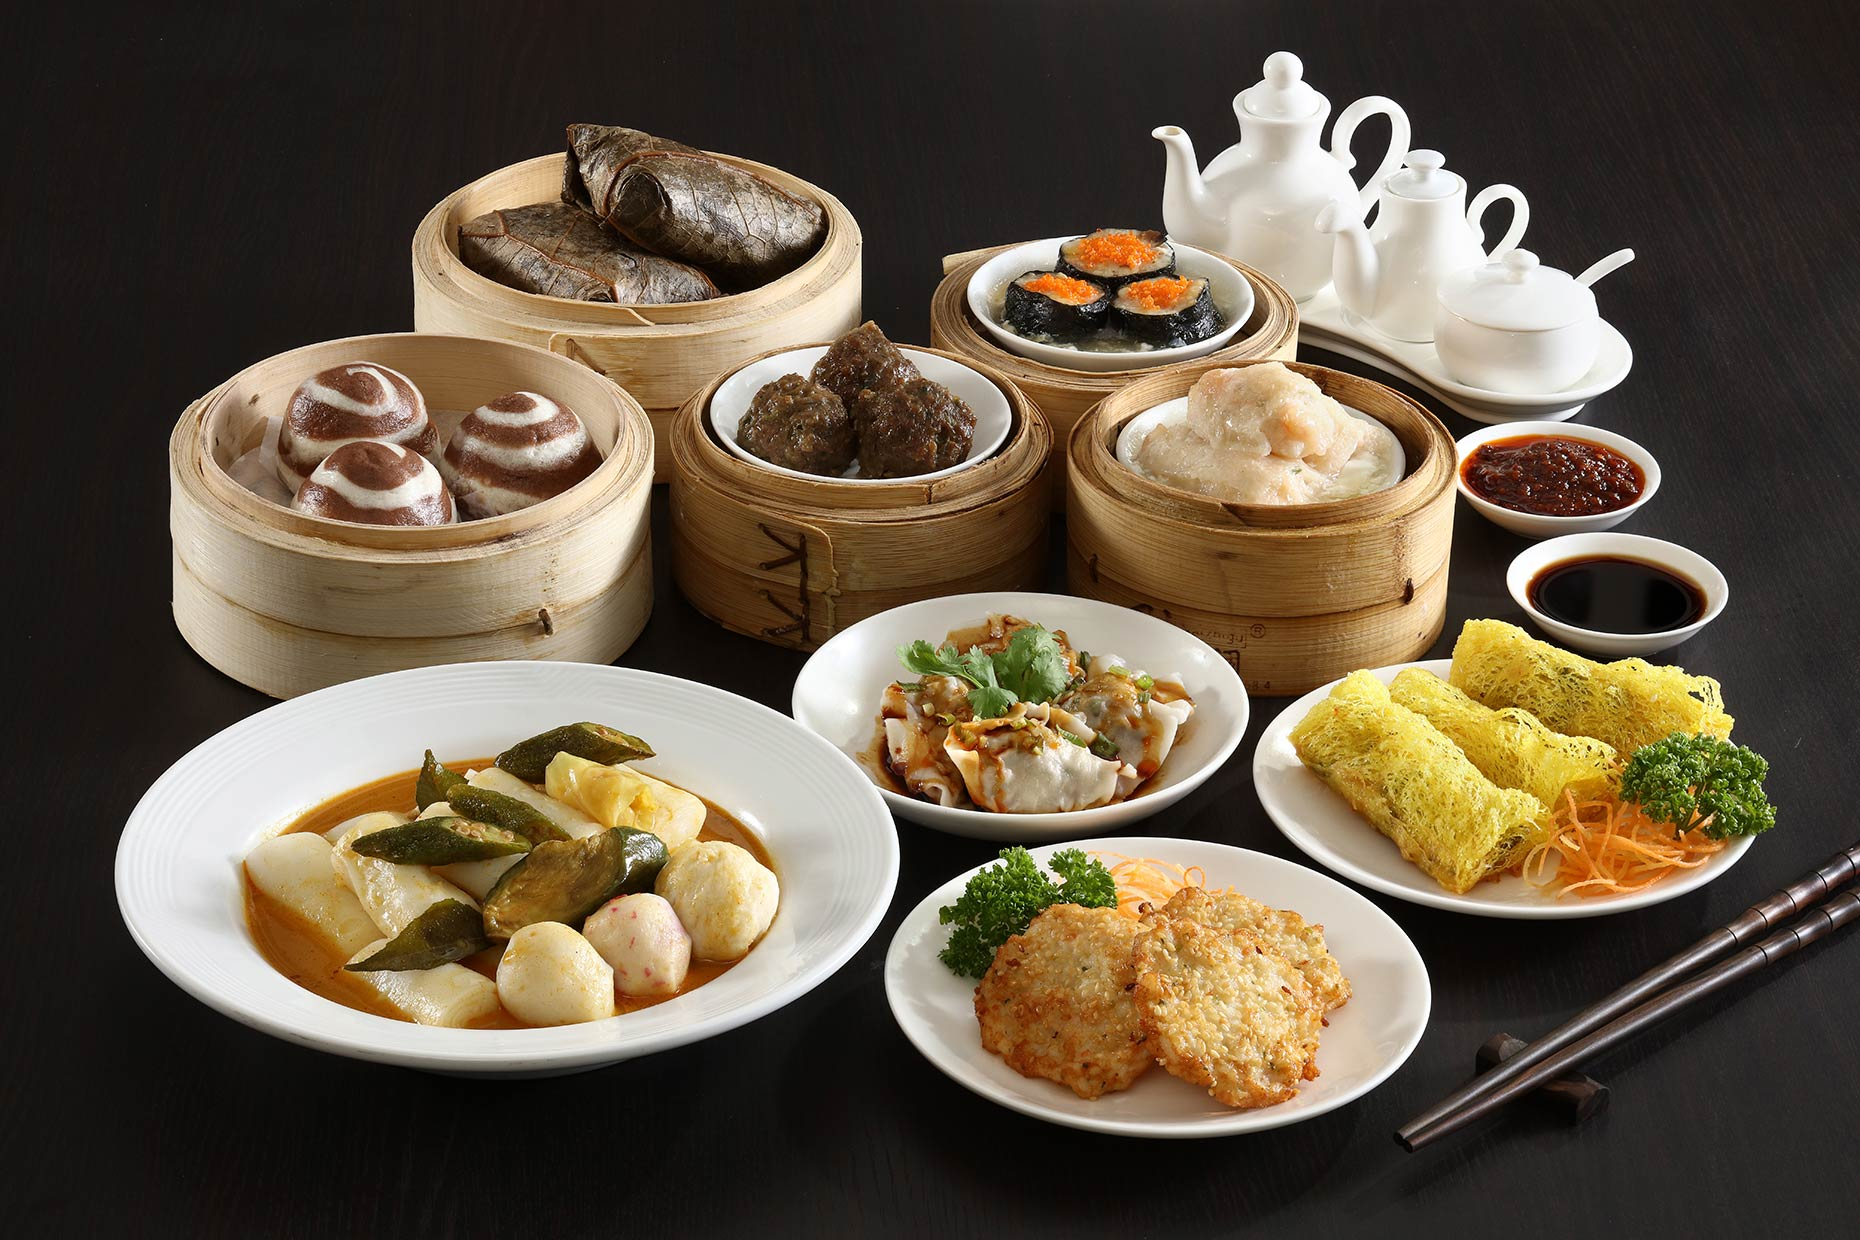 Dimsum feast. Food Photography for Bellevue Hotel. Shot on location in Alabang, Manila.